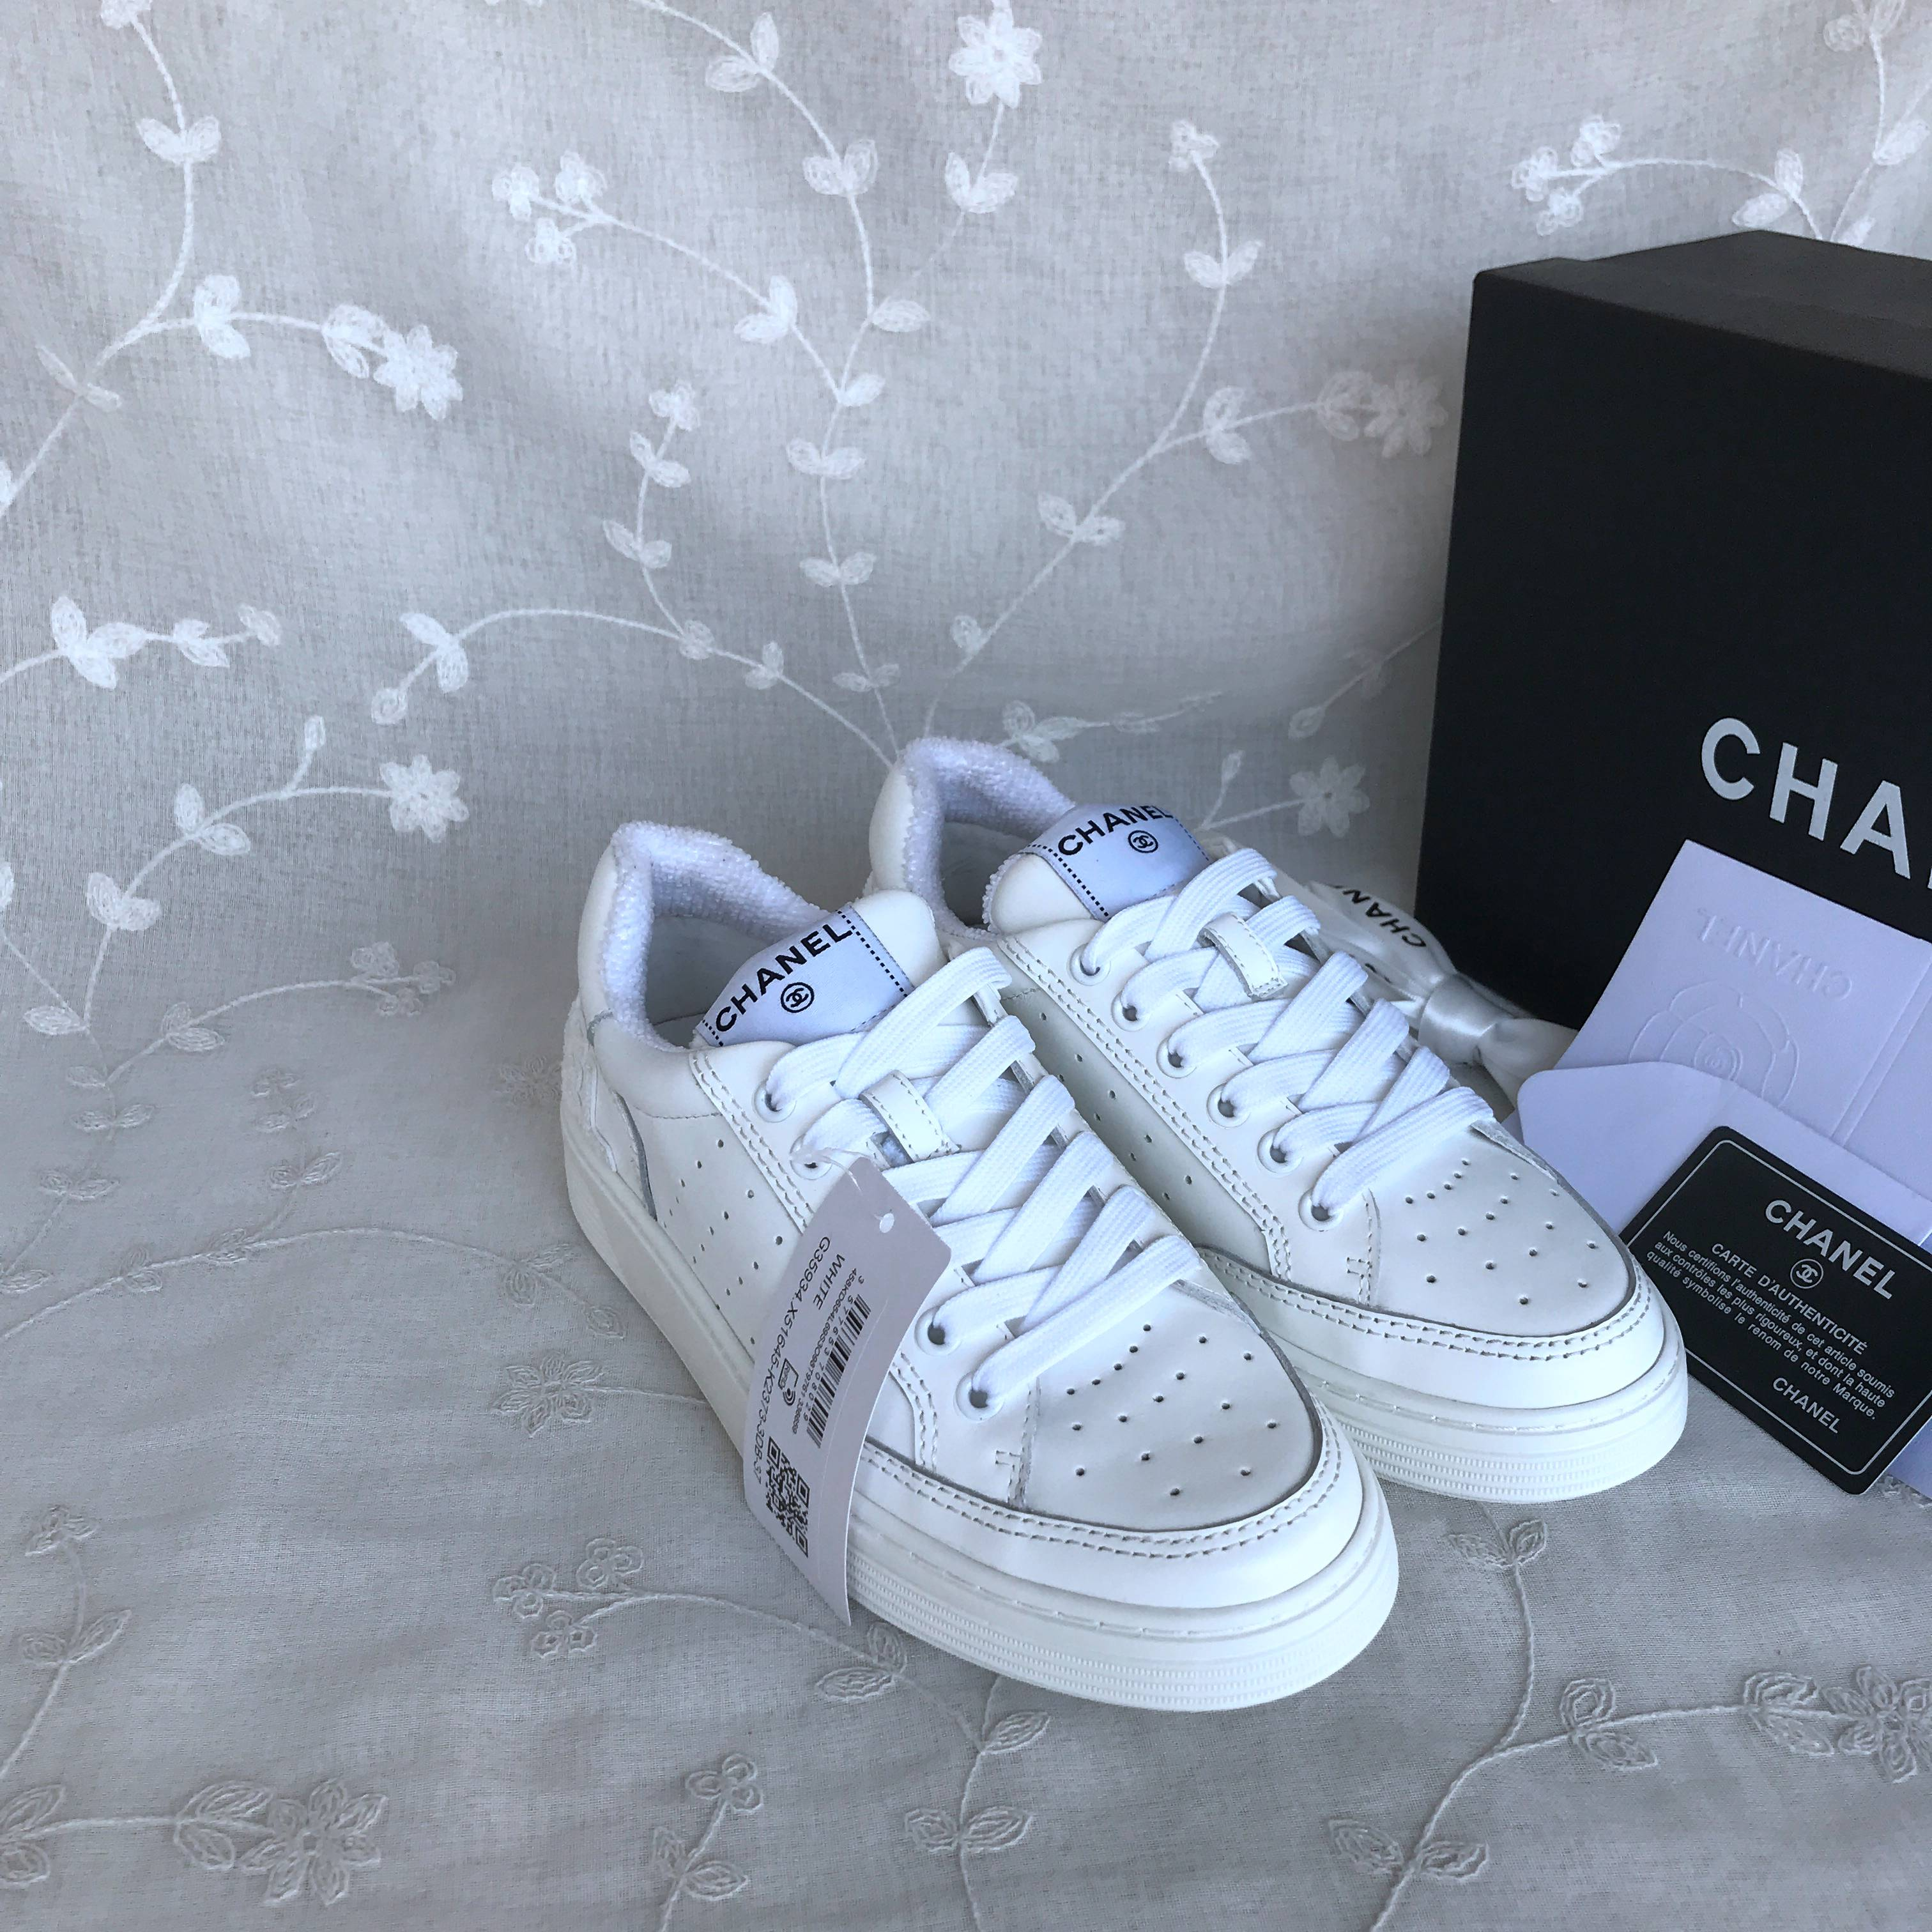 Chanel Casual Shoes 1351243